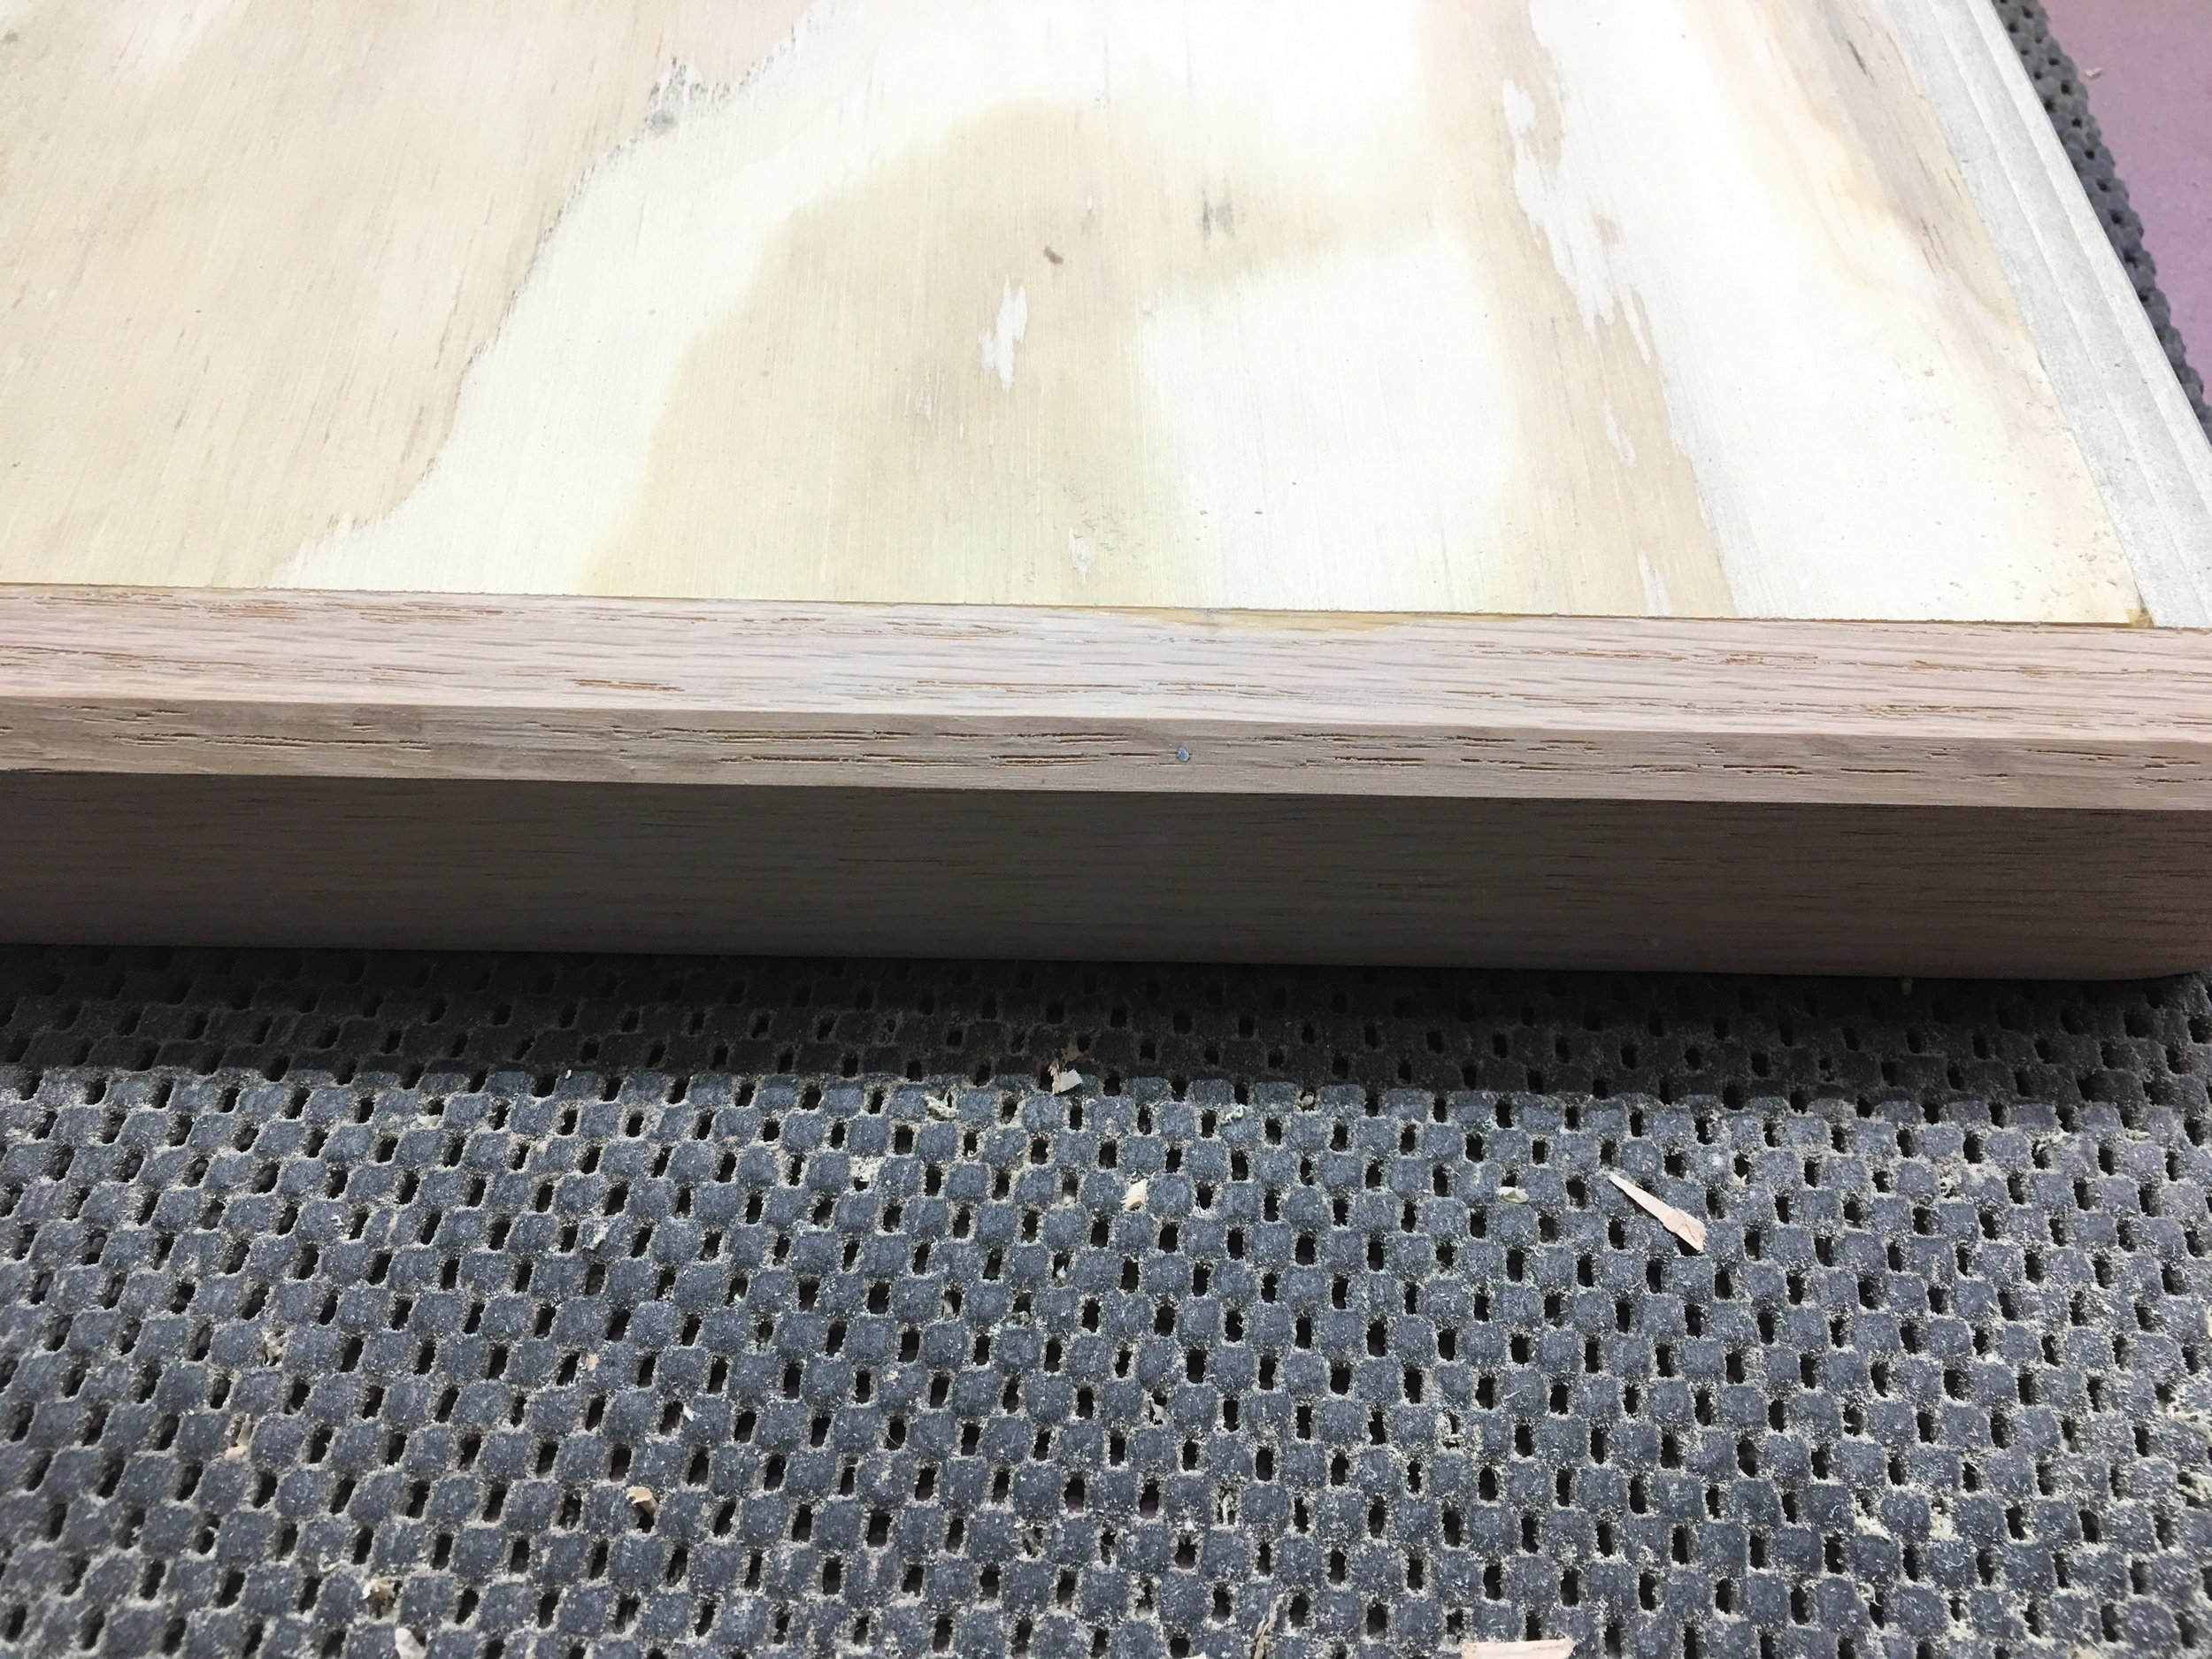 Here is a close-up of the chamfered edge as viewed from the bottom of the tray.